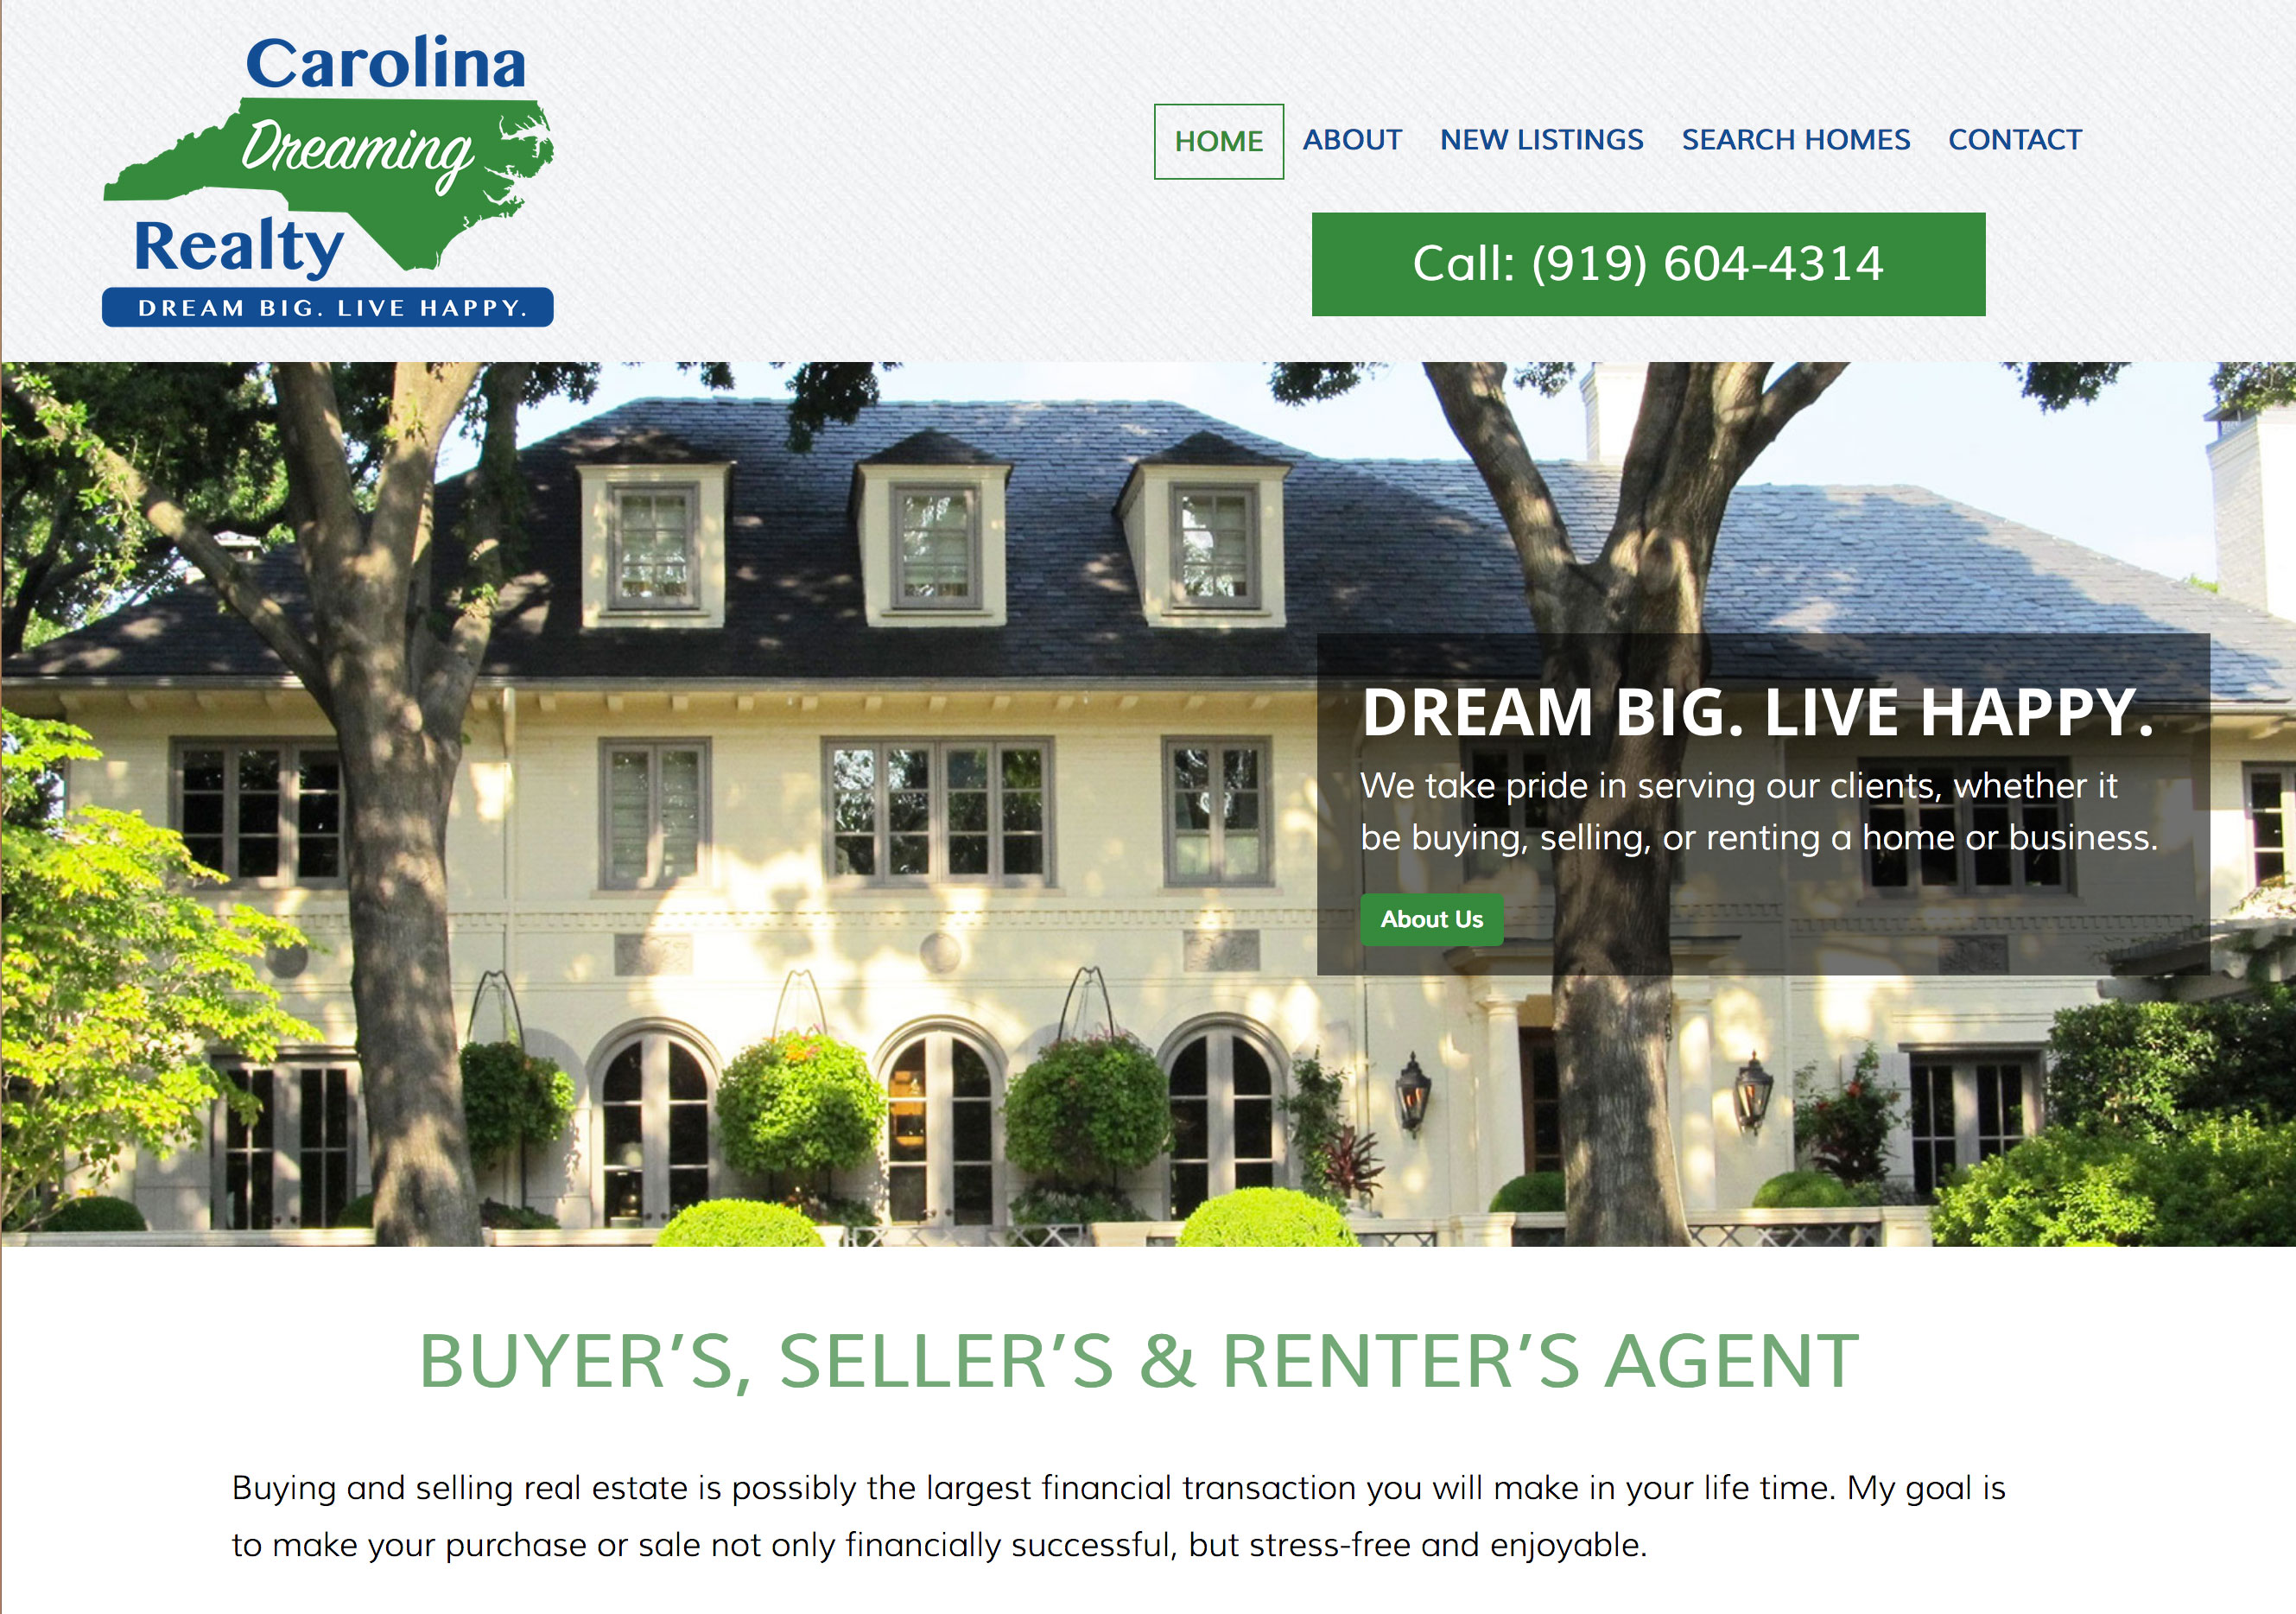 Carolina Dreaming Realty